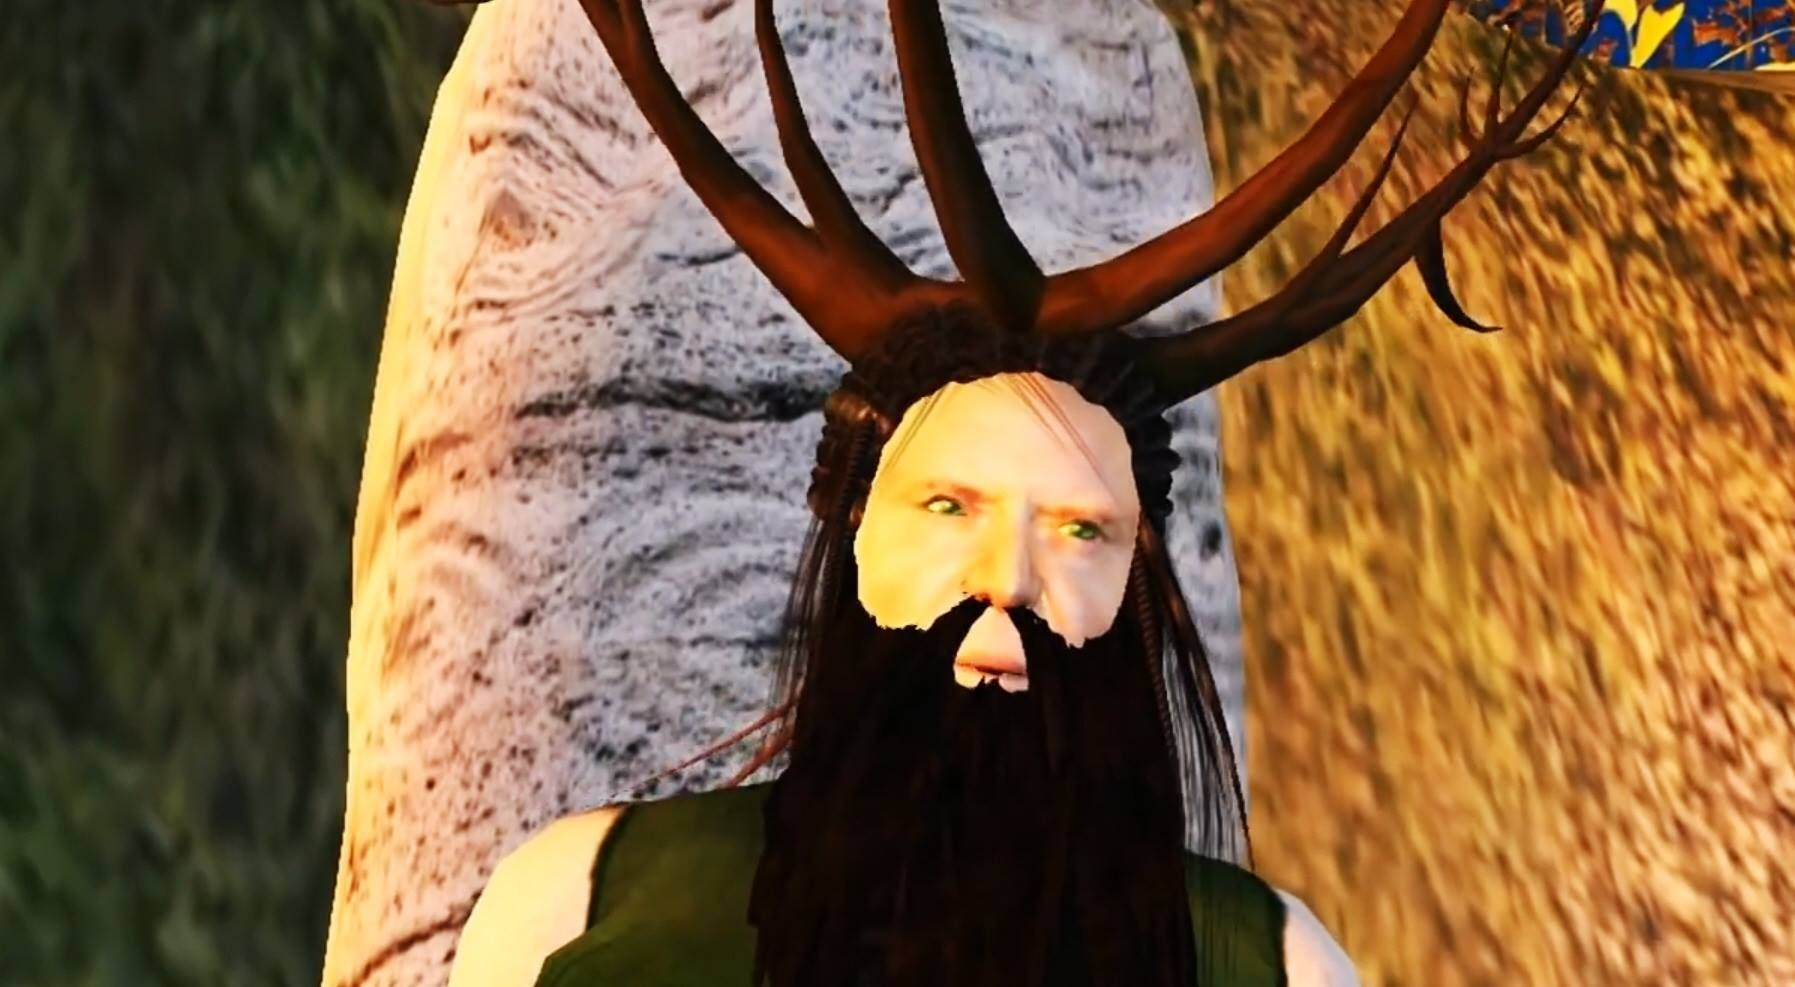 Screenshot from my animation Eostre Equinox http://youtu.be/4lZ-YKIeXww